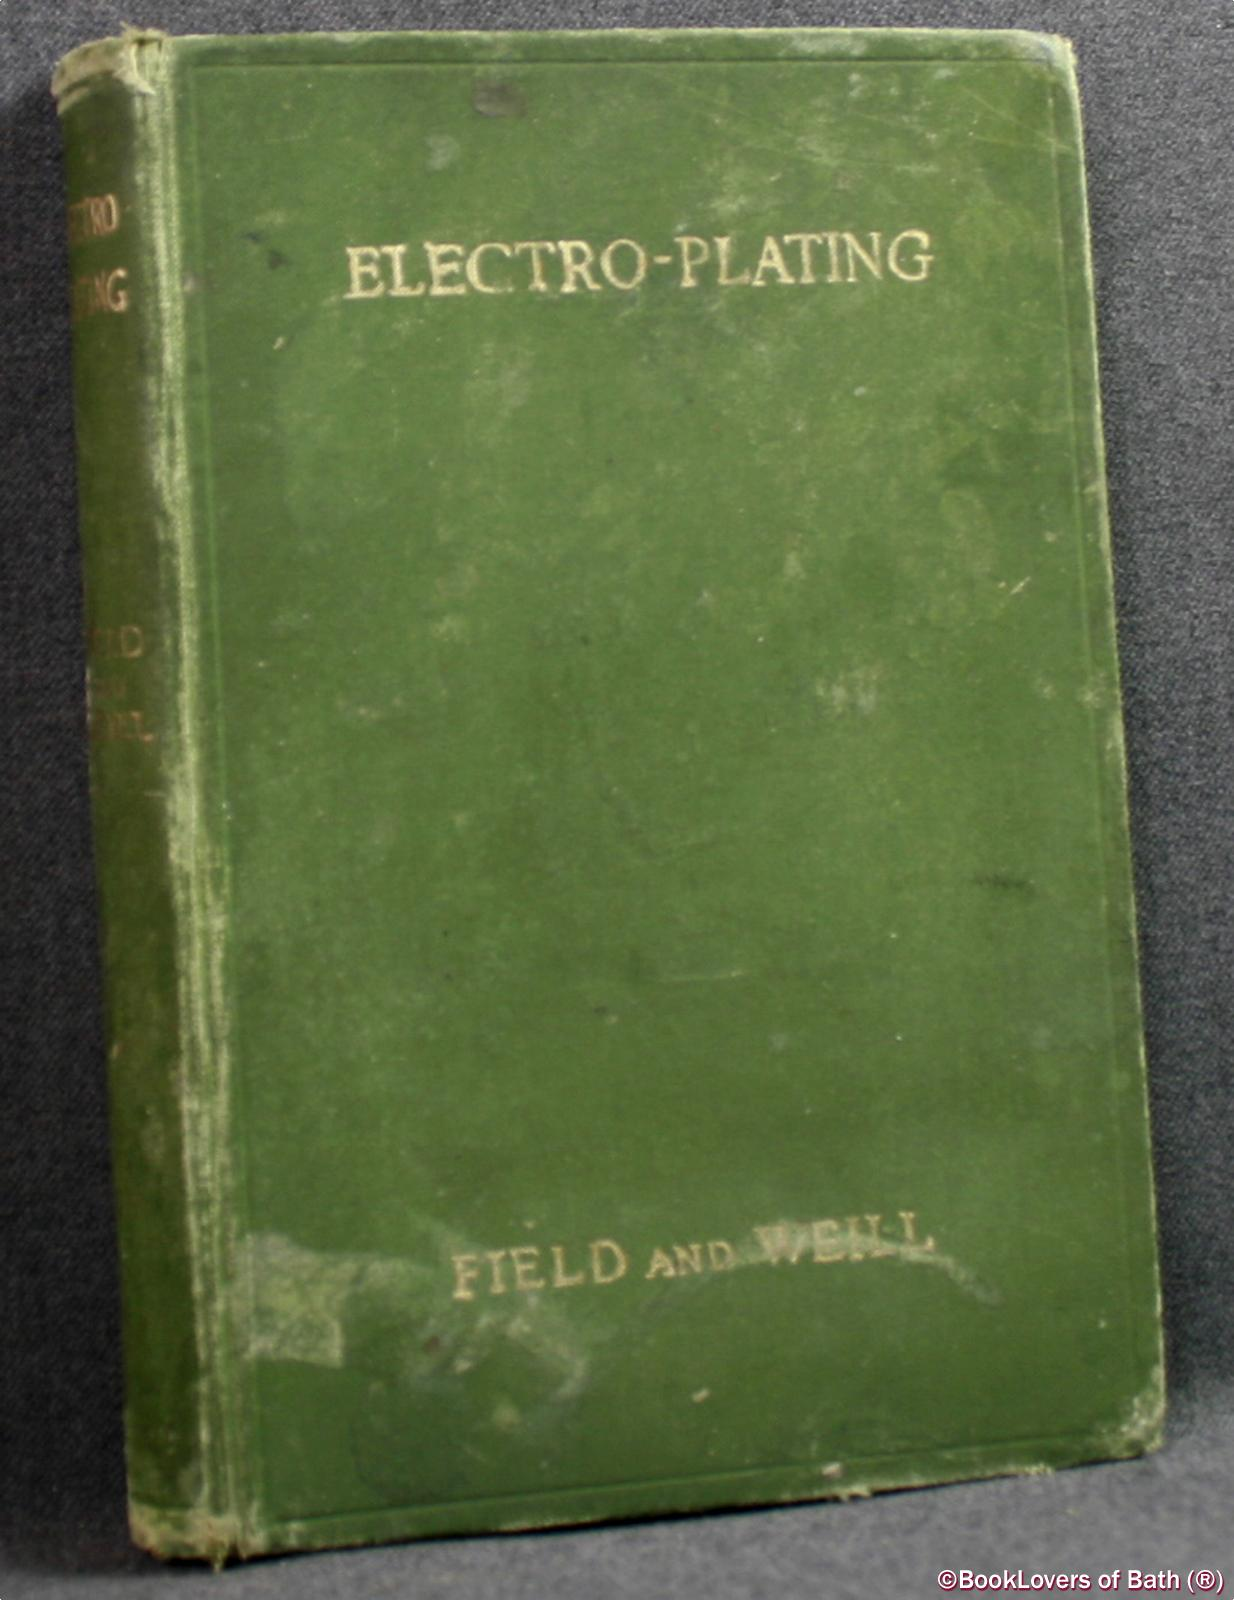 Electro-plating: A Survey of Modern Practice Including Nickel, Zinc, Cadmium and Chromium - Samuel Field & A. Dudley Weill